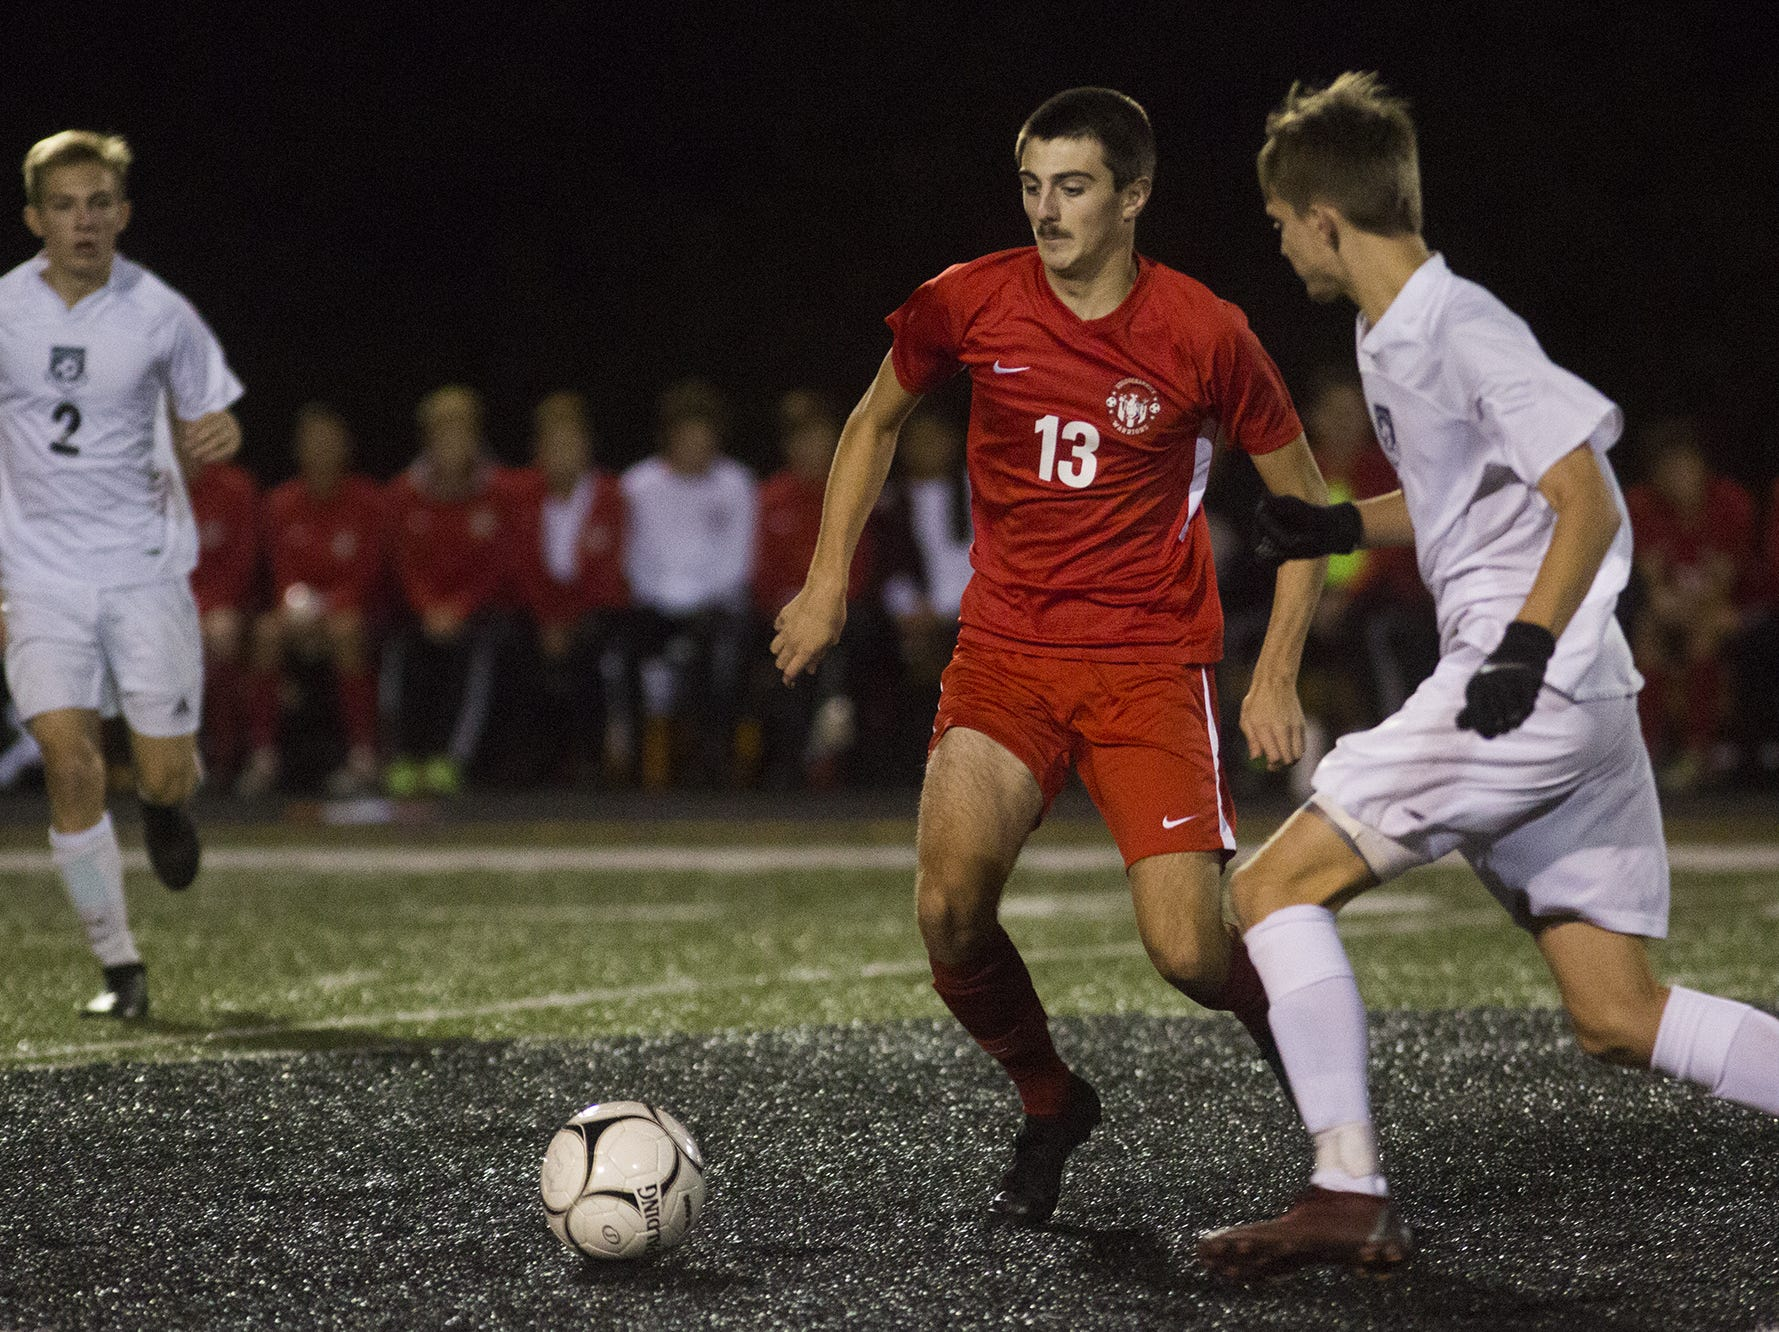 Susquehannock's Nolan Holloway, left, and West York's Adam Hersey compete for the ball. Susquehannock plays West York in the YAIAA boys' soccer championship game at Northeastern High School in Manchester, Saturday, October 20, 2018.